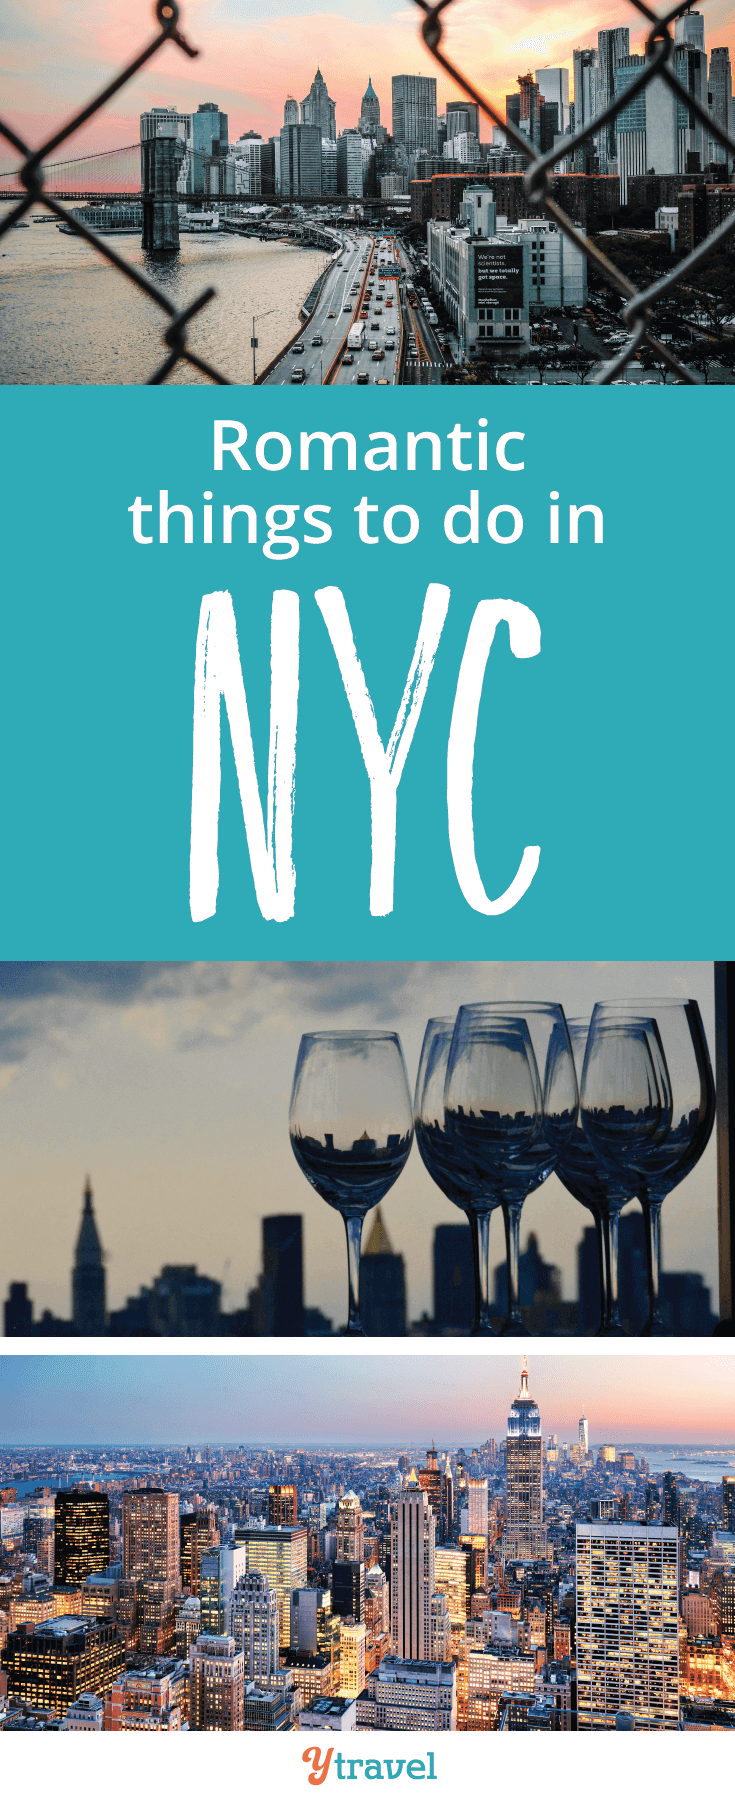 Are you searching for romantic things to do in NYC? If so you've picked a brilliant destination with endless places to eat, places to drink and things to see!